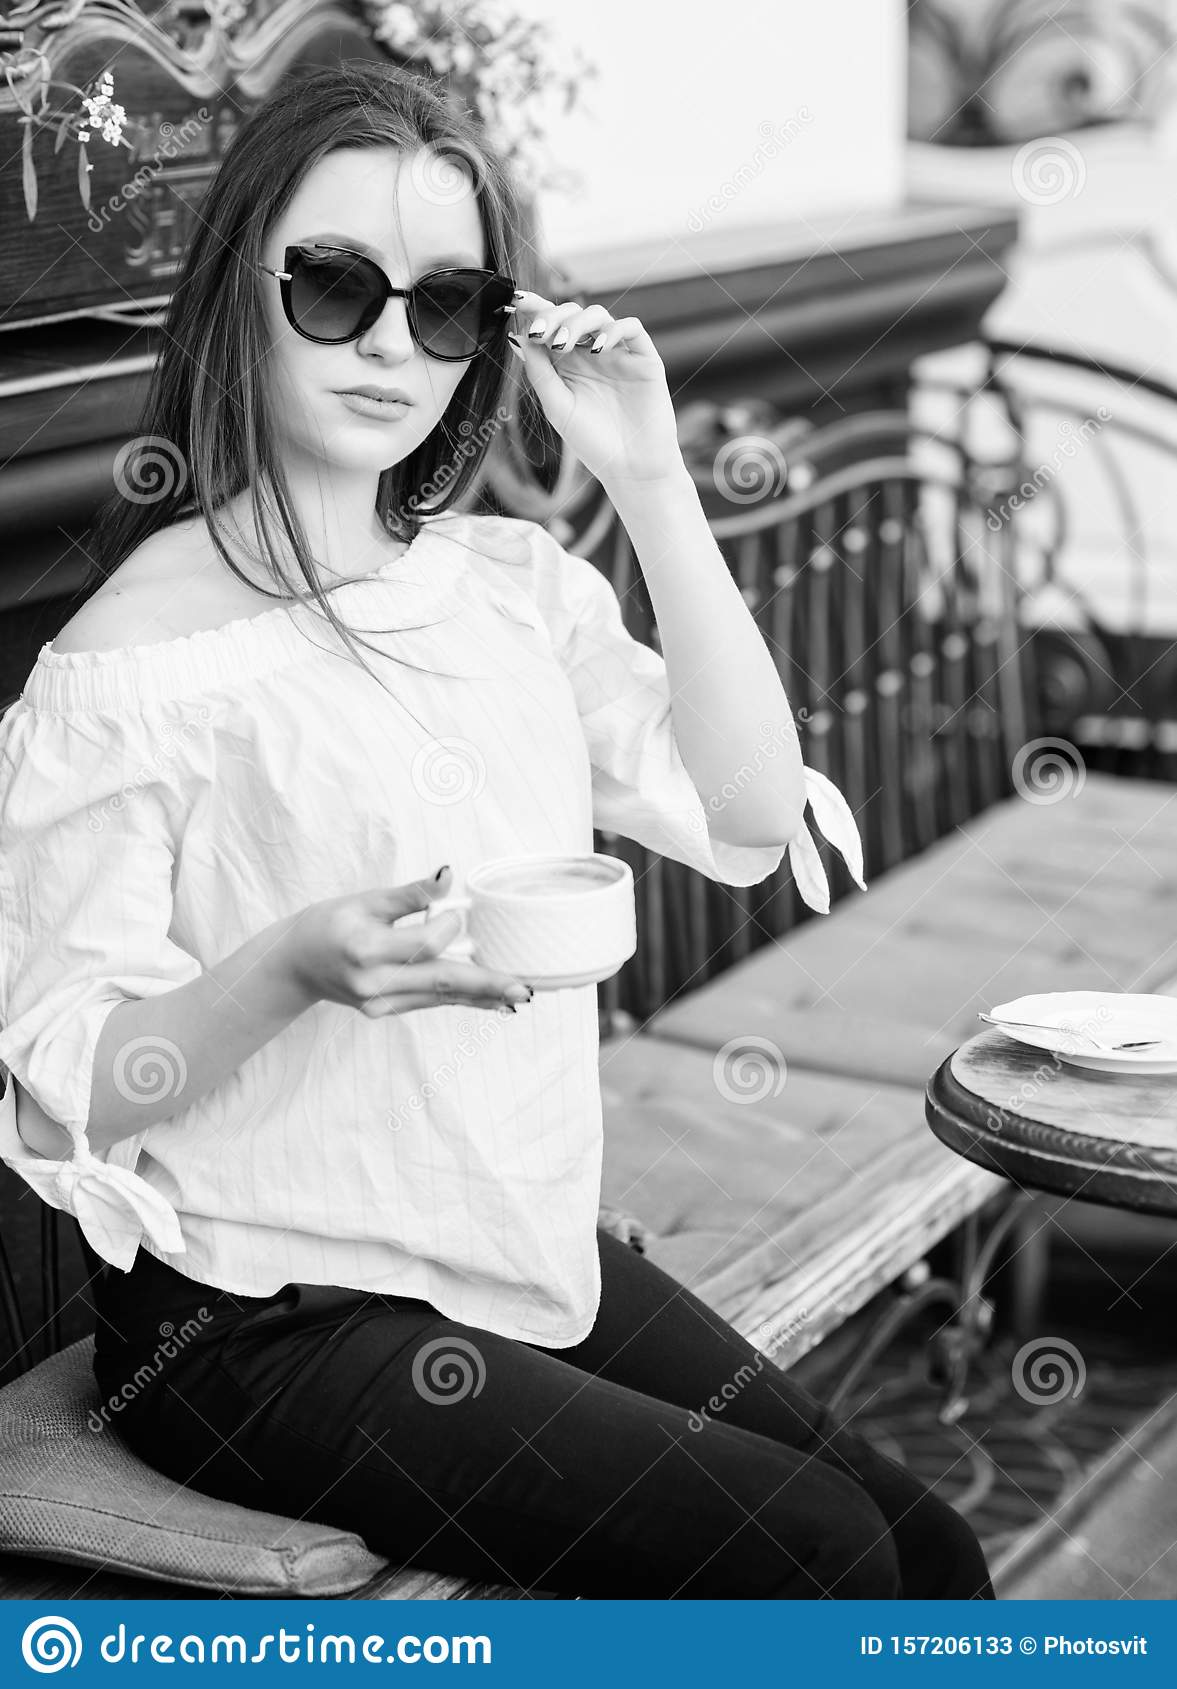 Breakfast time in cafe. Girl enjoy morning coffee. Woman in sunglasses drink coffee outdoors. Girl relax in cafe